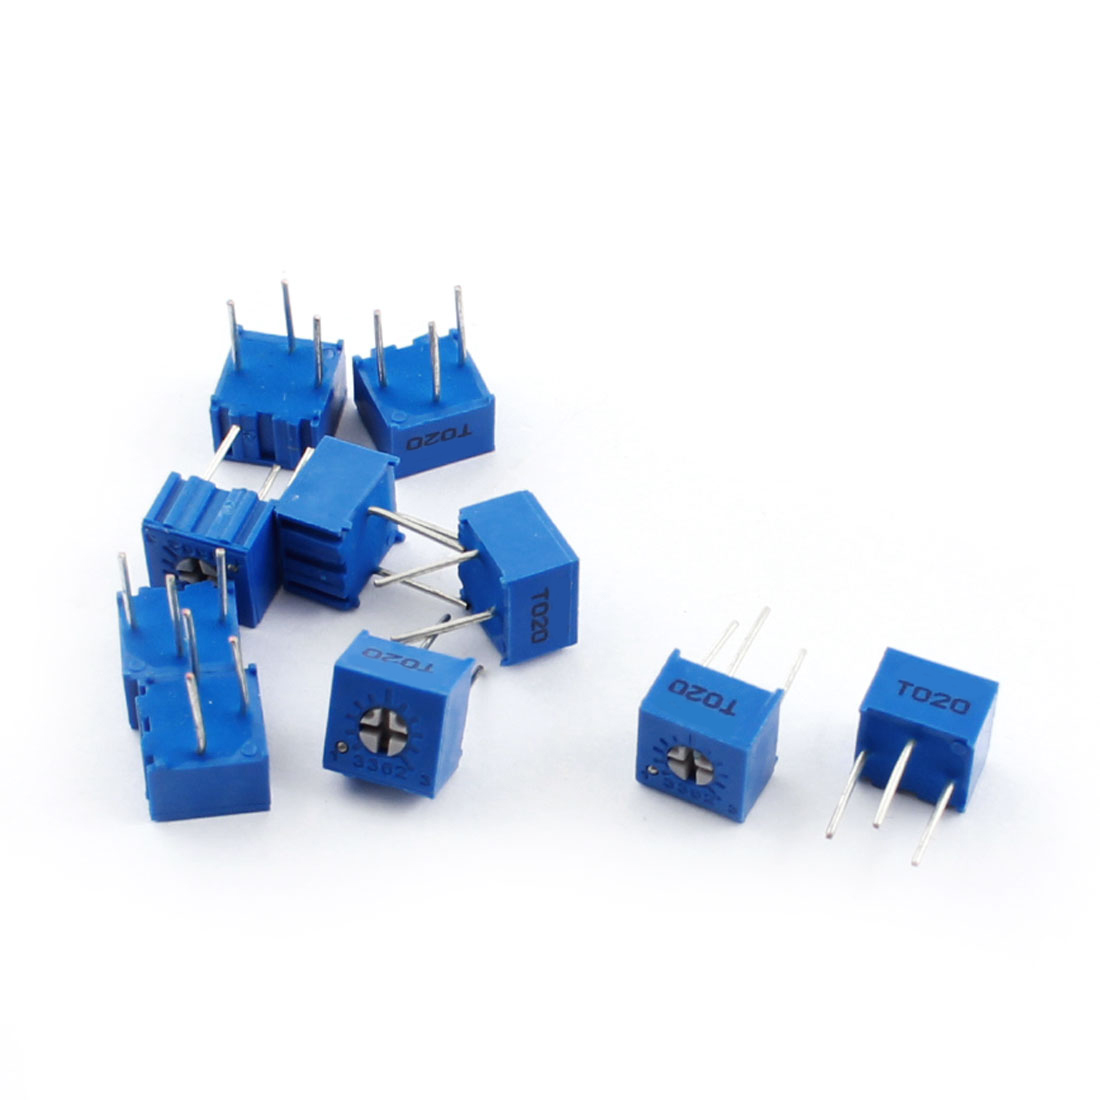 10Pcs Adjustable Potentiometer Trimmer Variable Resistor 3362P-103 10K Ohm